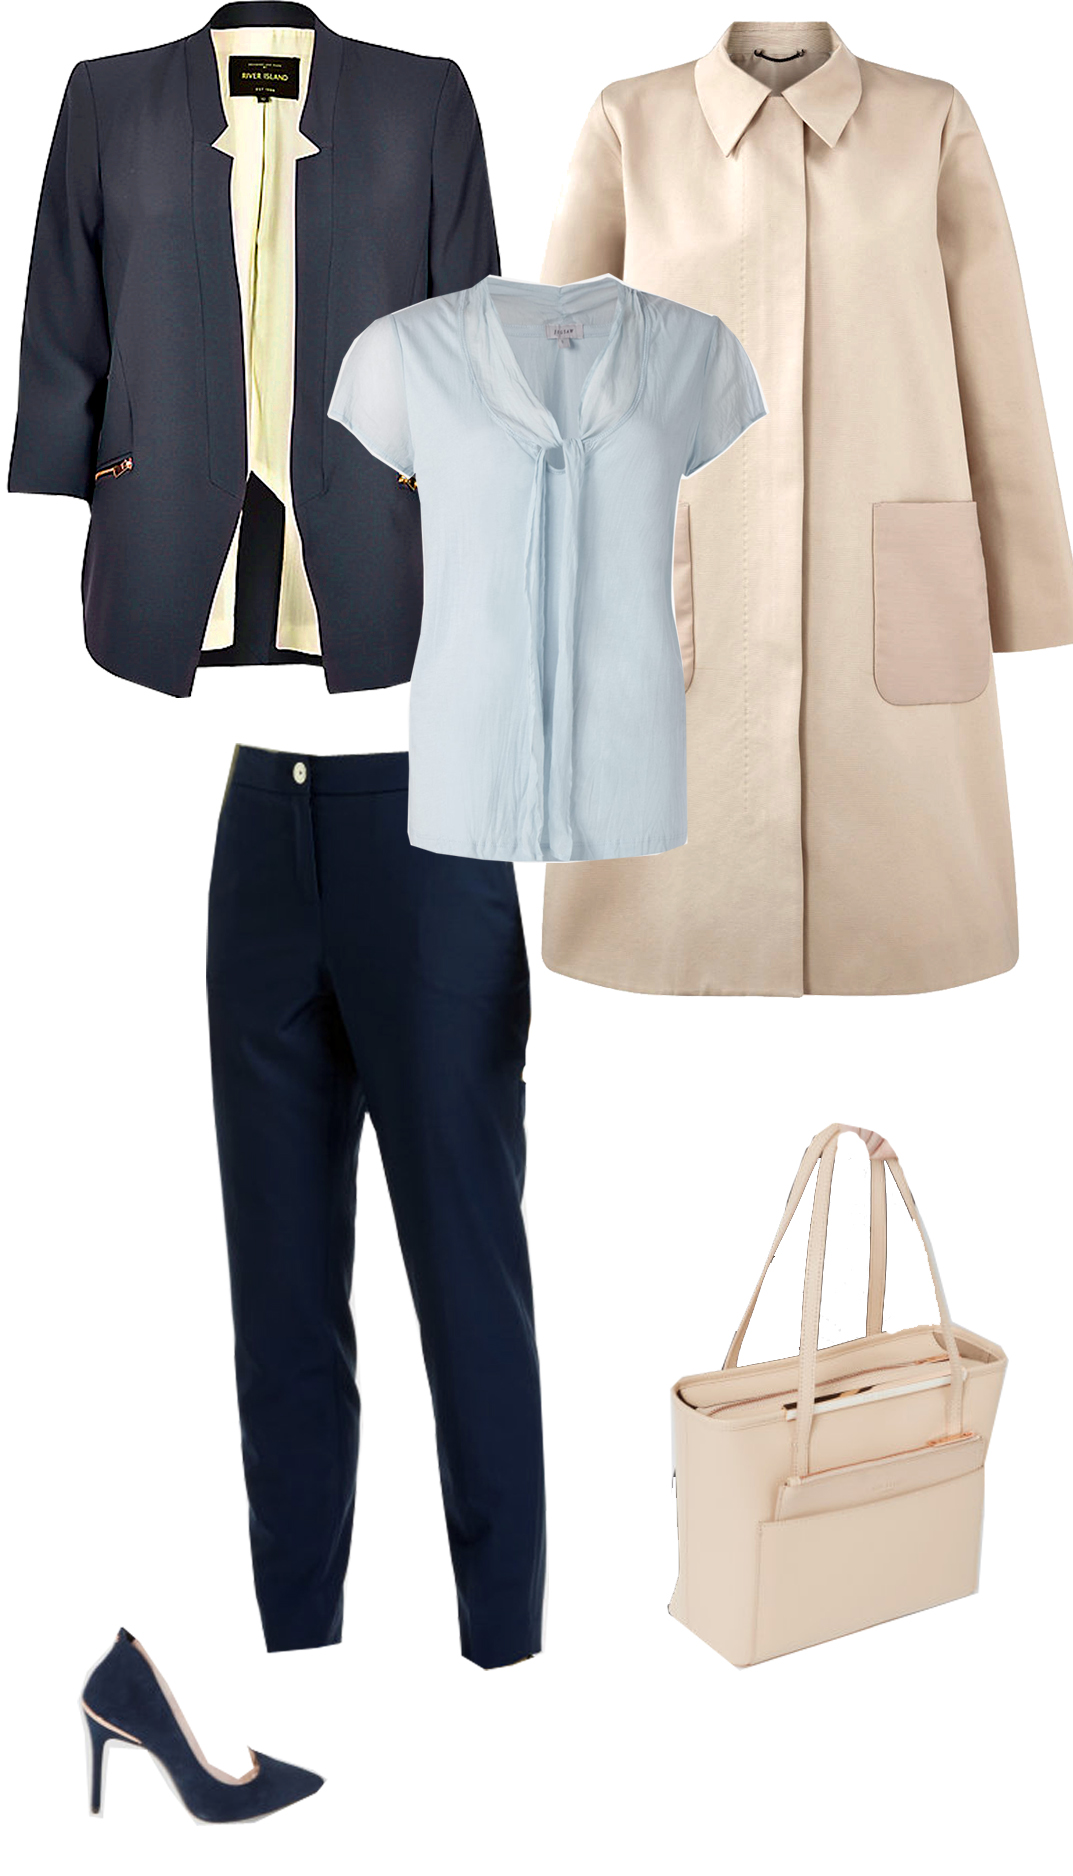 a business outfit